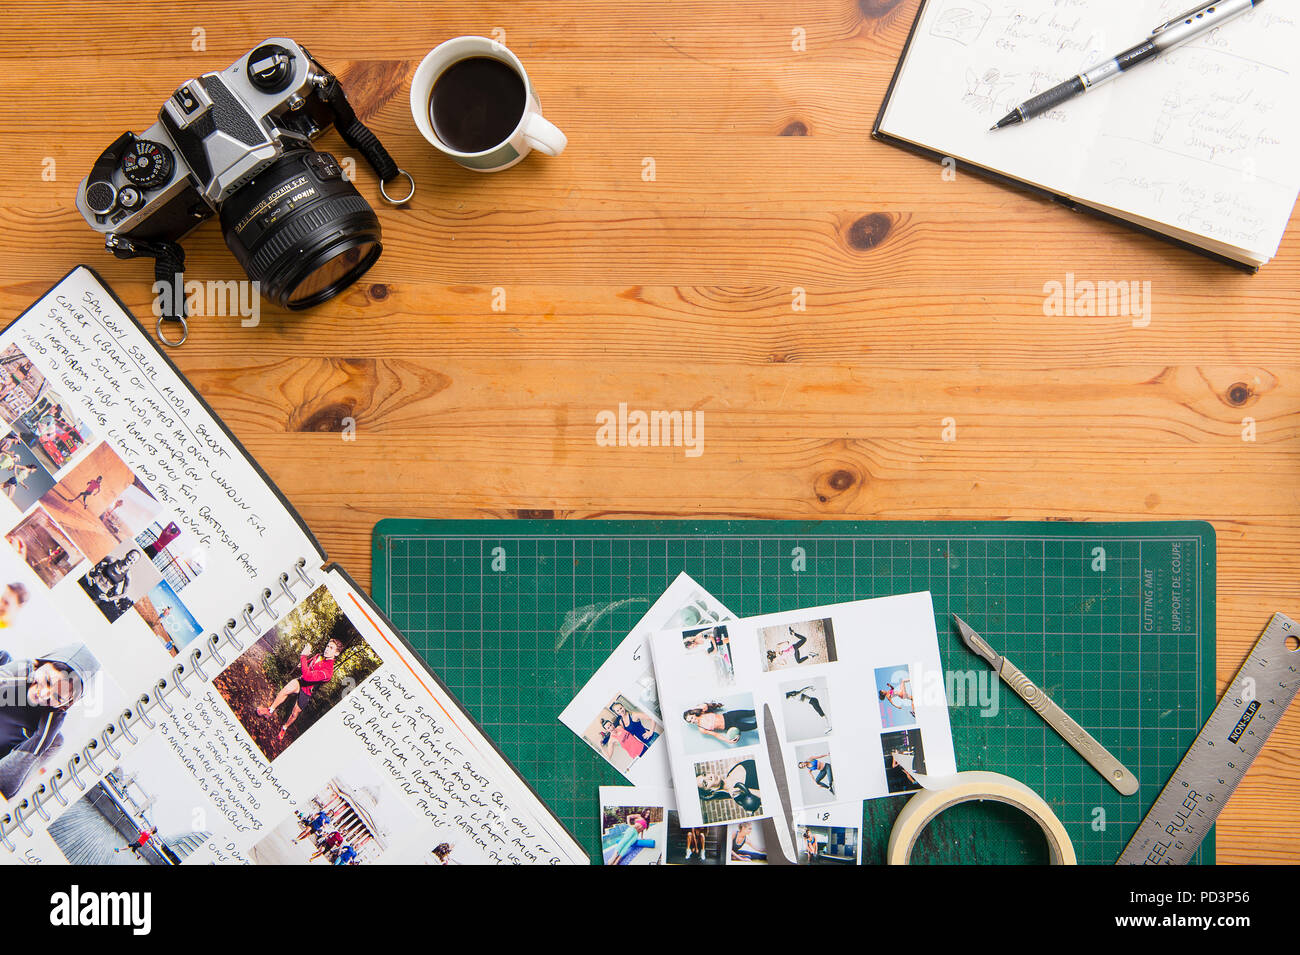 Top down view of tabletop with fiml camera, sketchbook, coffee, notebook, scalpel and cutting mat - Stock Image